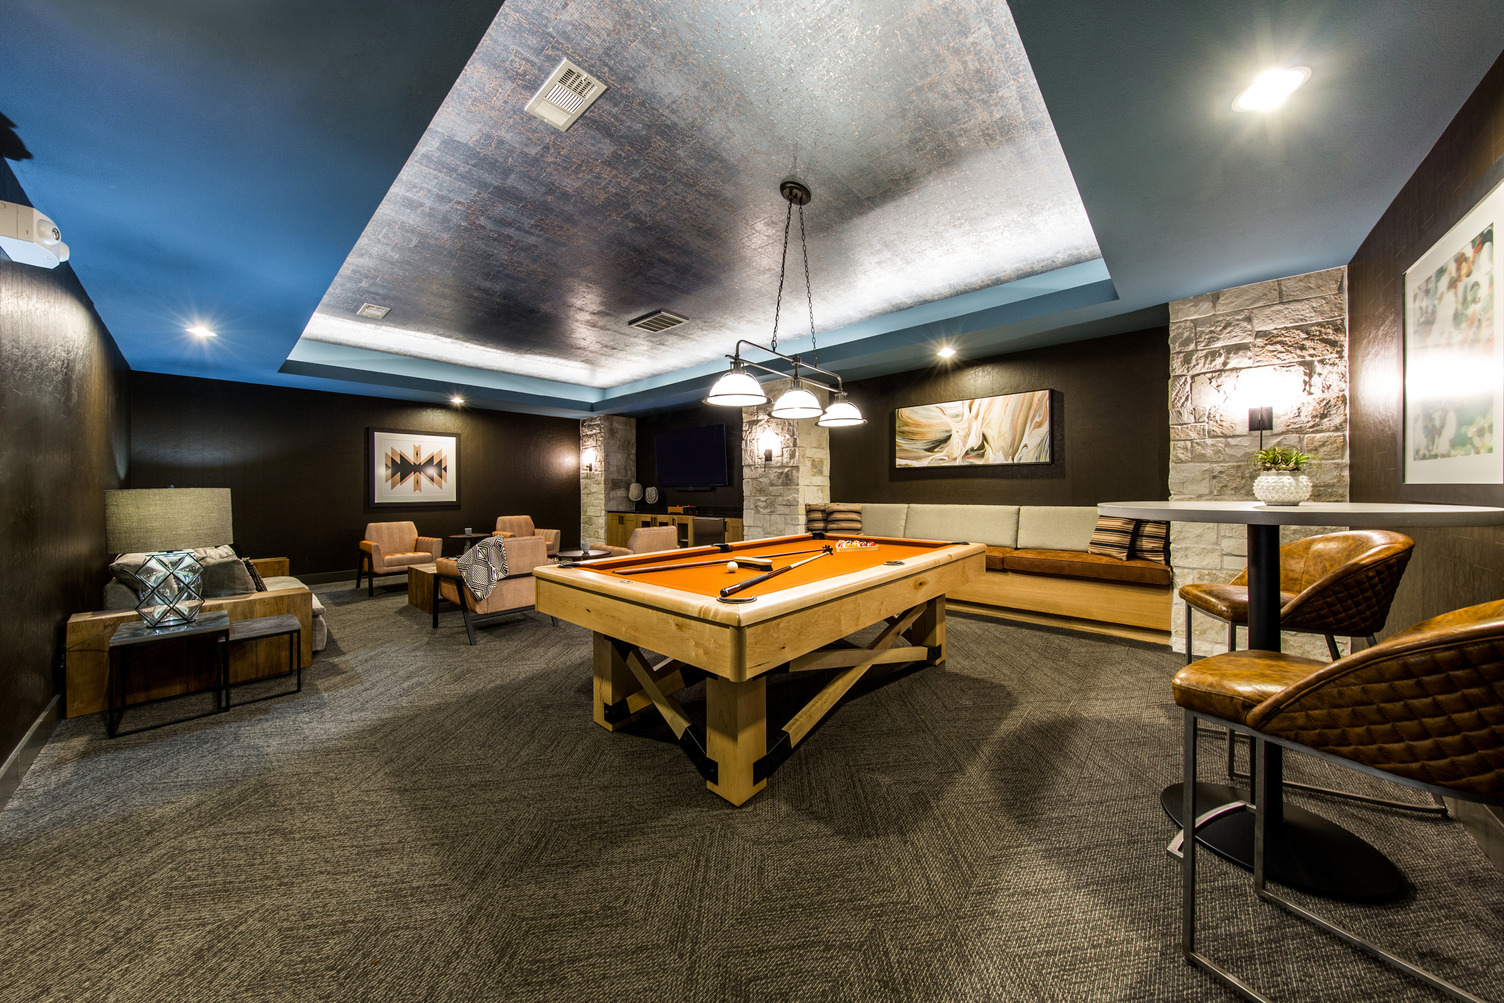 Wide view of gaming room with lounge seating and pool table